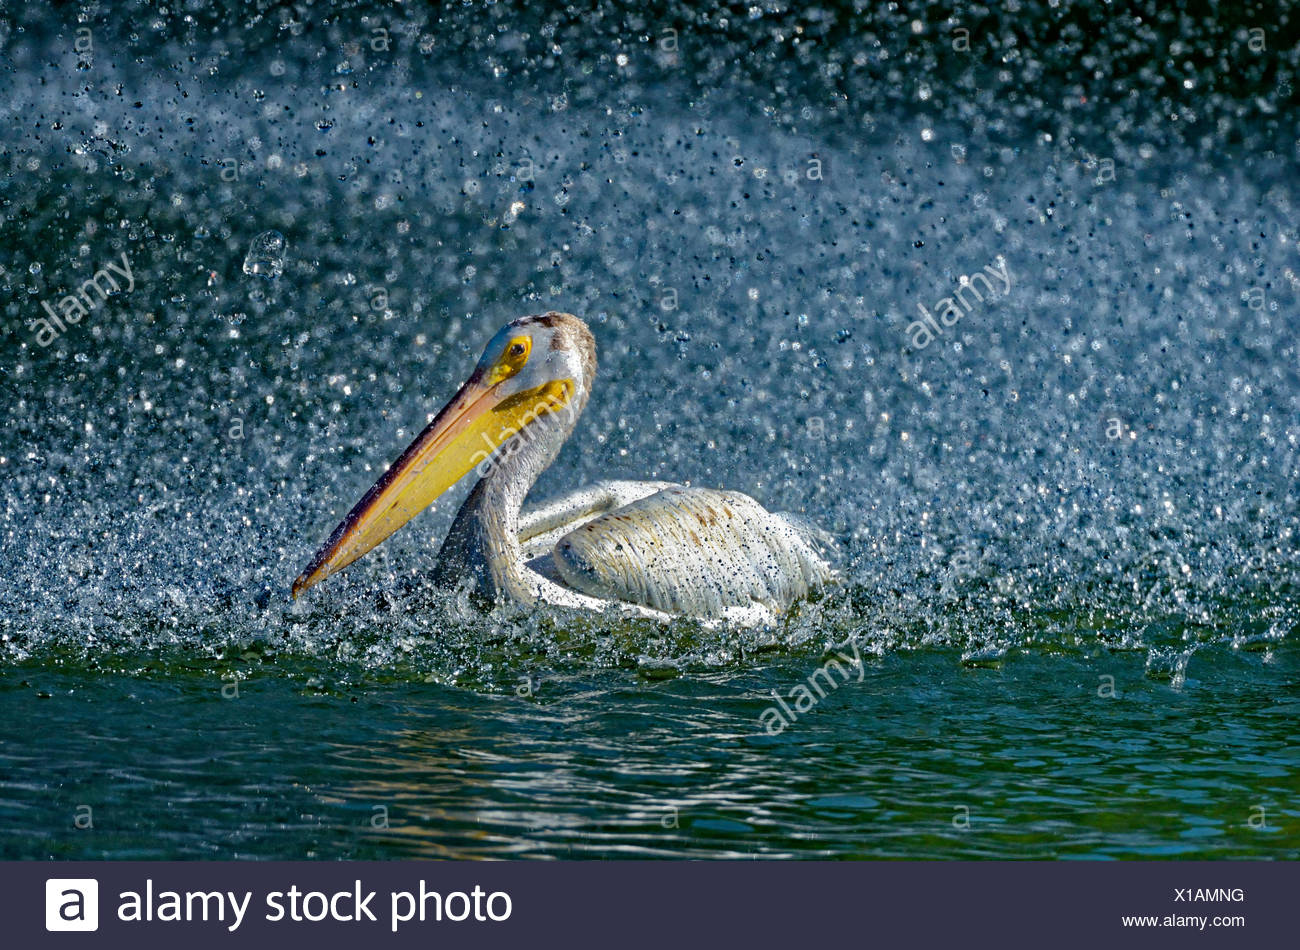 American white pelican (Pelecanus erythrorhynchos) in man-made pond by the fountain, Winnipeg, Manitoba, Canada - Stock Image